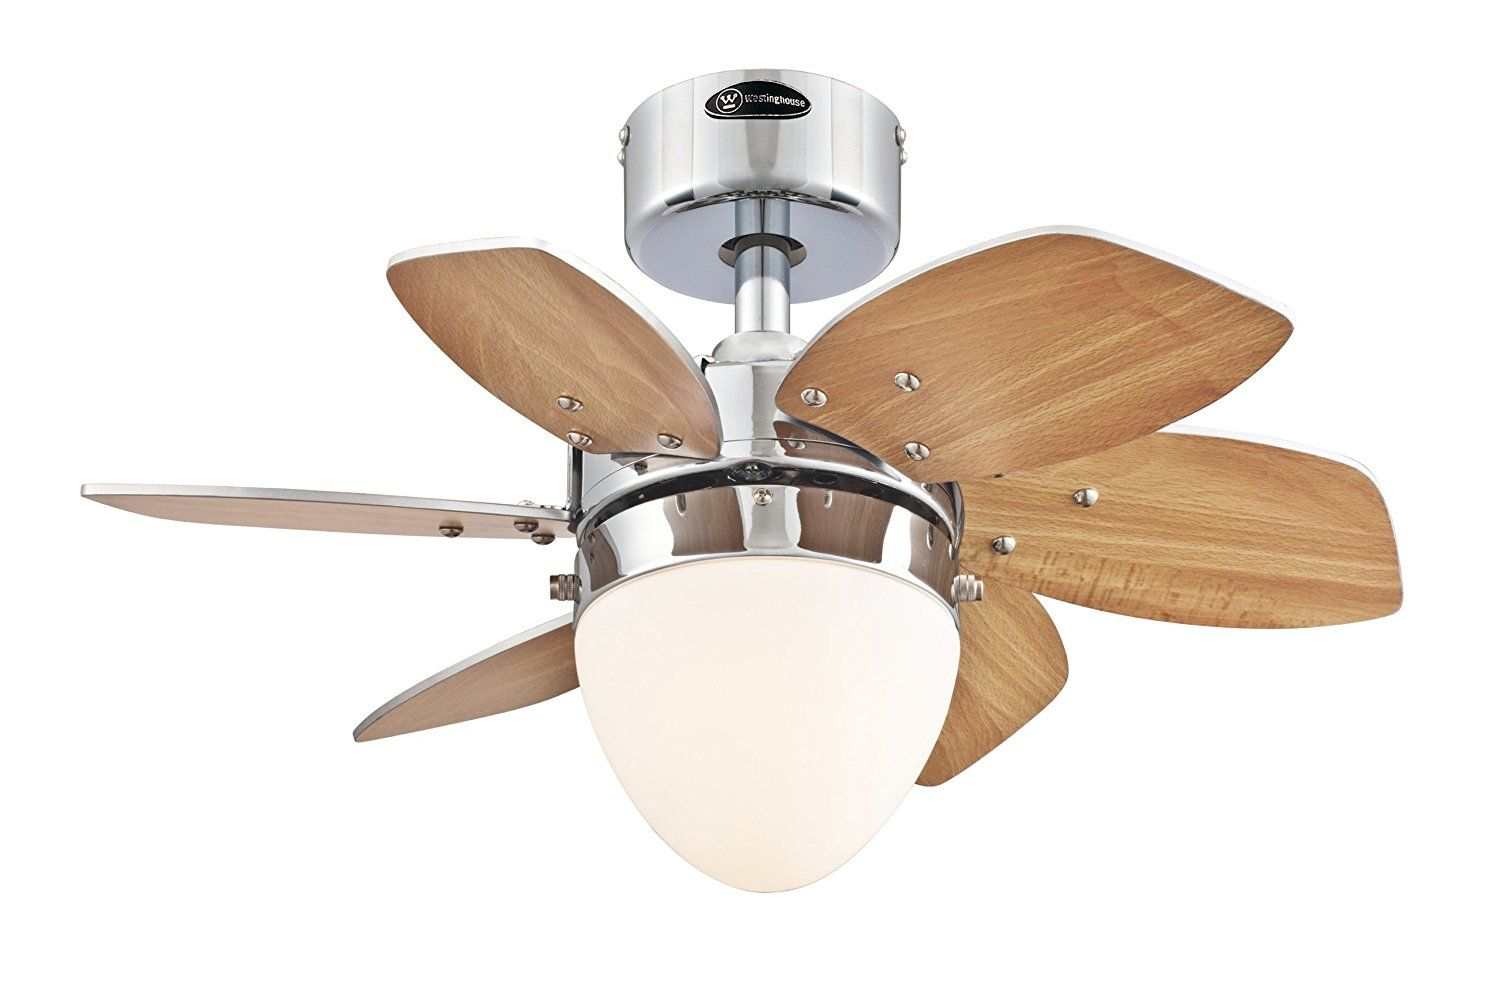 This Celing Fan Has A Small Diameter Which Is Important To Me With Their Bunk Beds And It Is Inexpensive And Well Ceiling Fan Fan Light Ceiling Fan With Light